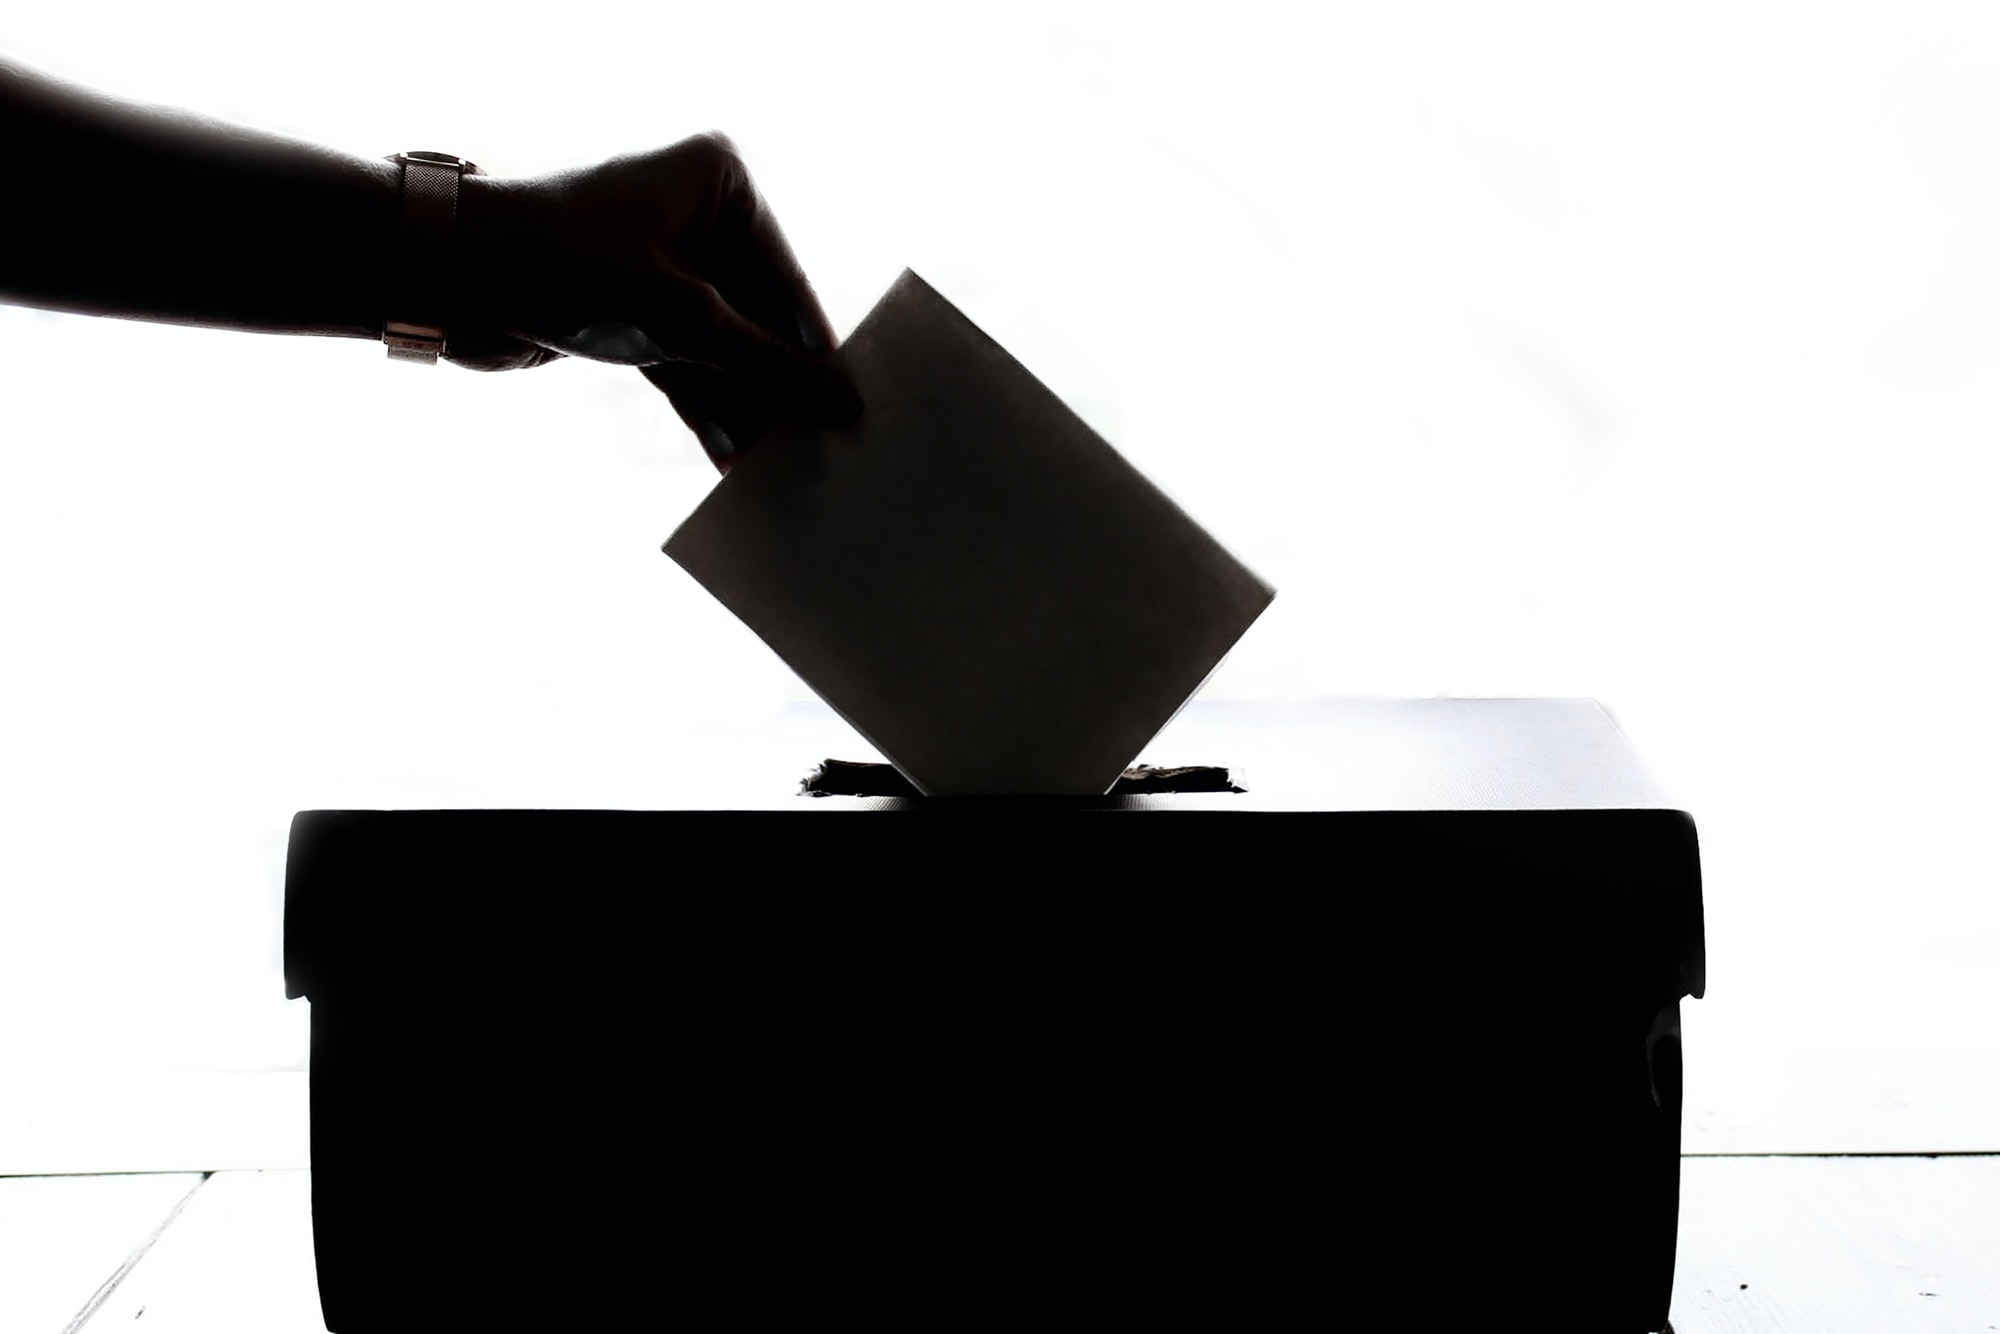 Now is the time to change our electoral system